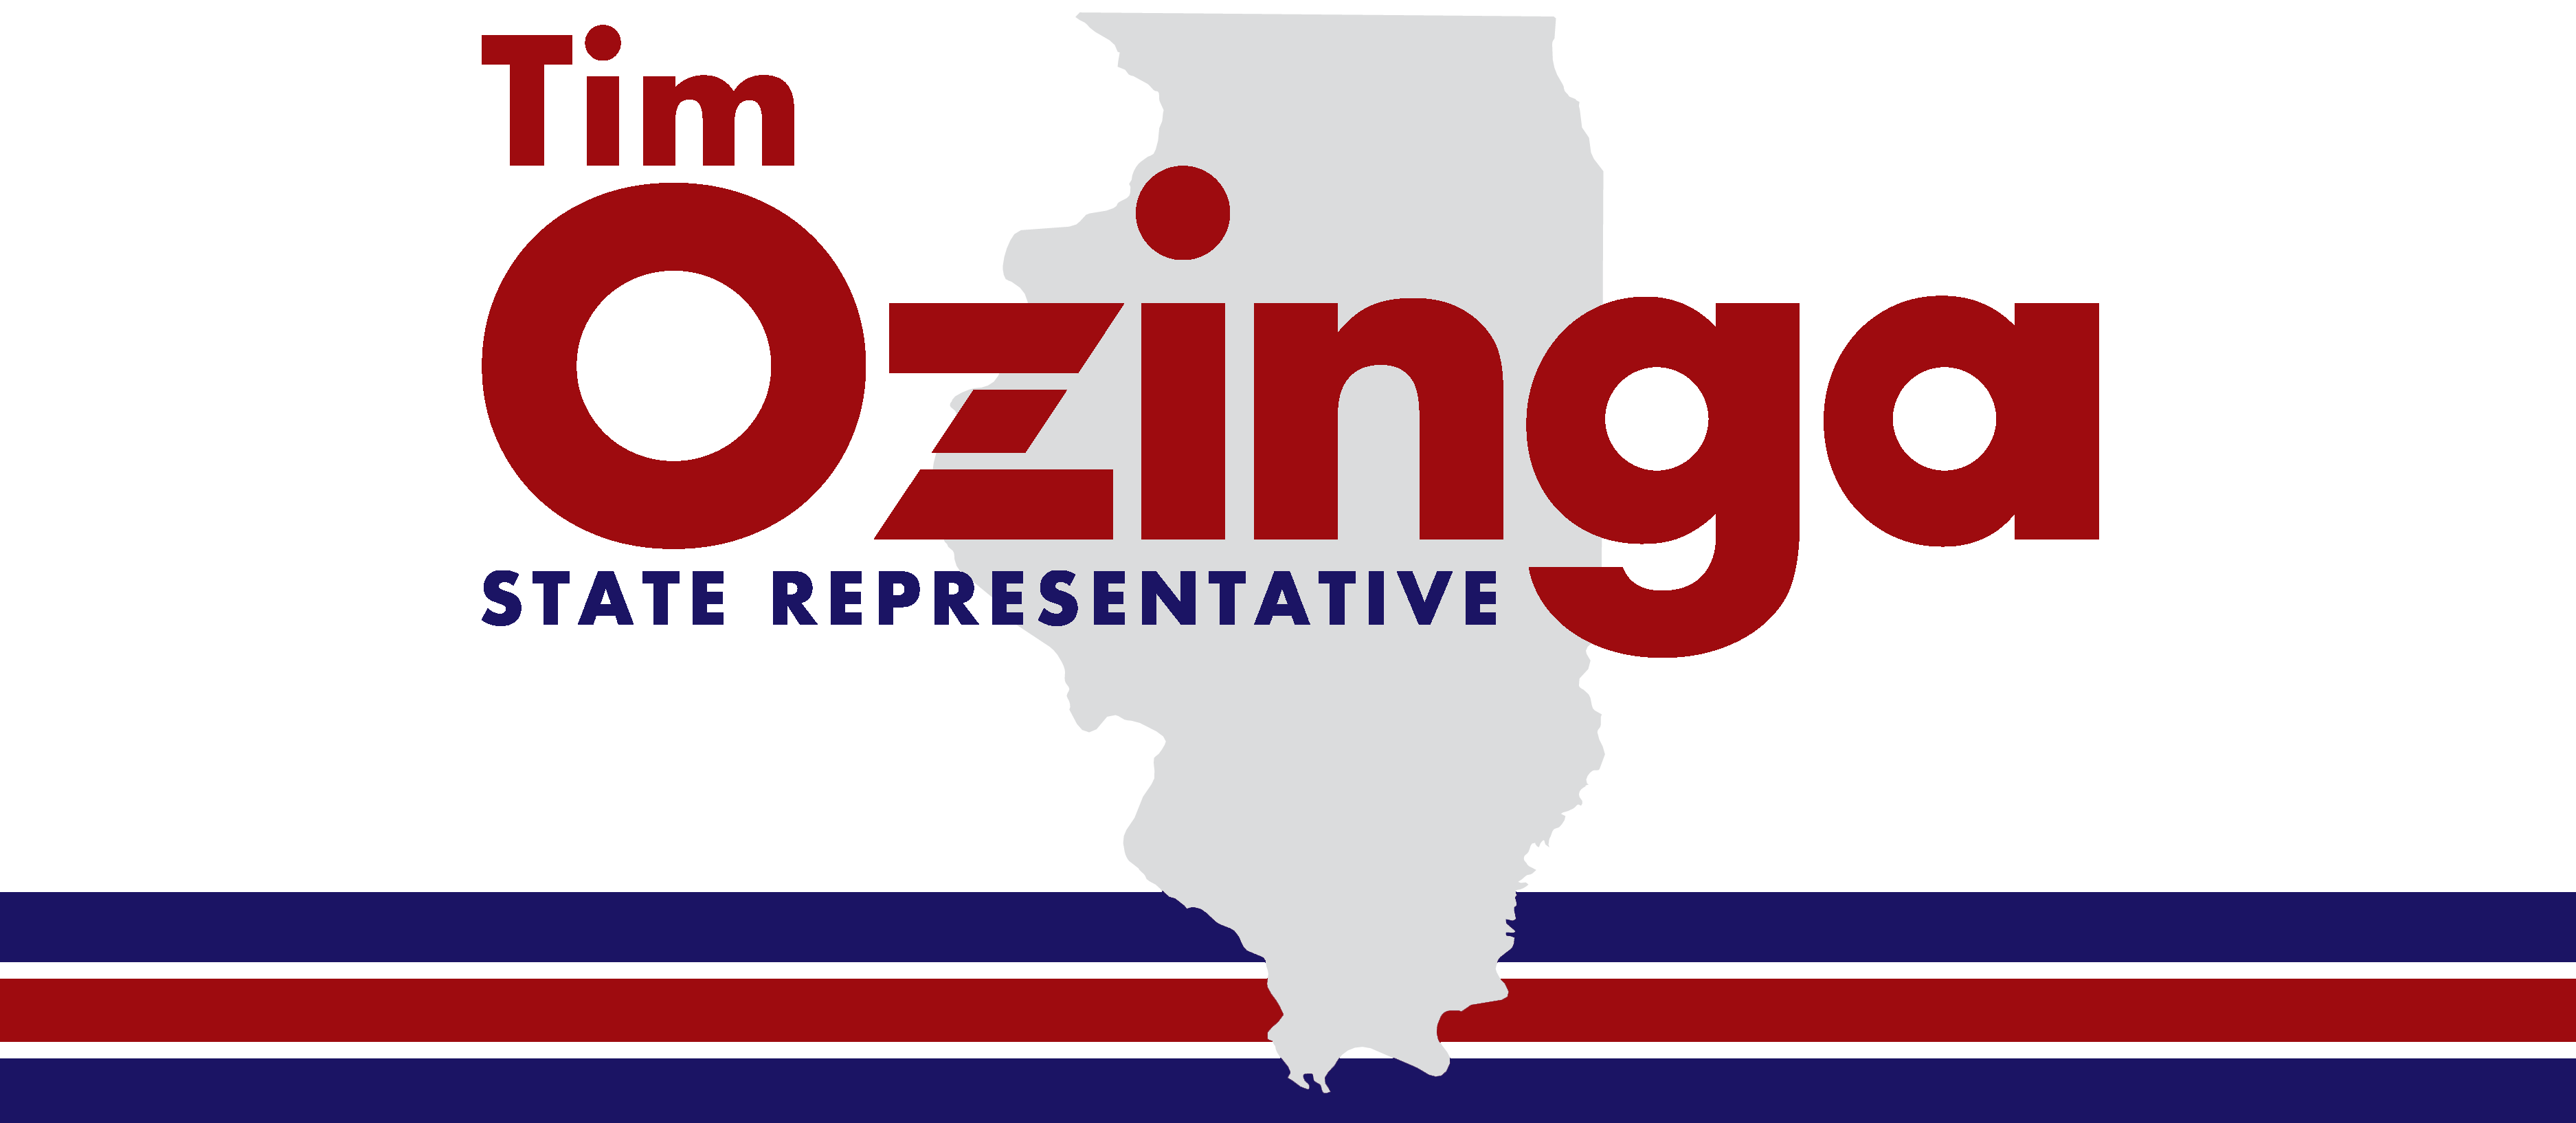 Tim Ozinga | Illinois State Representative